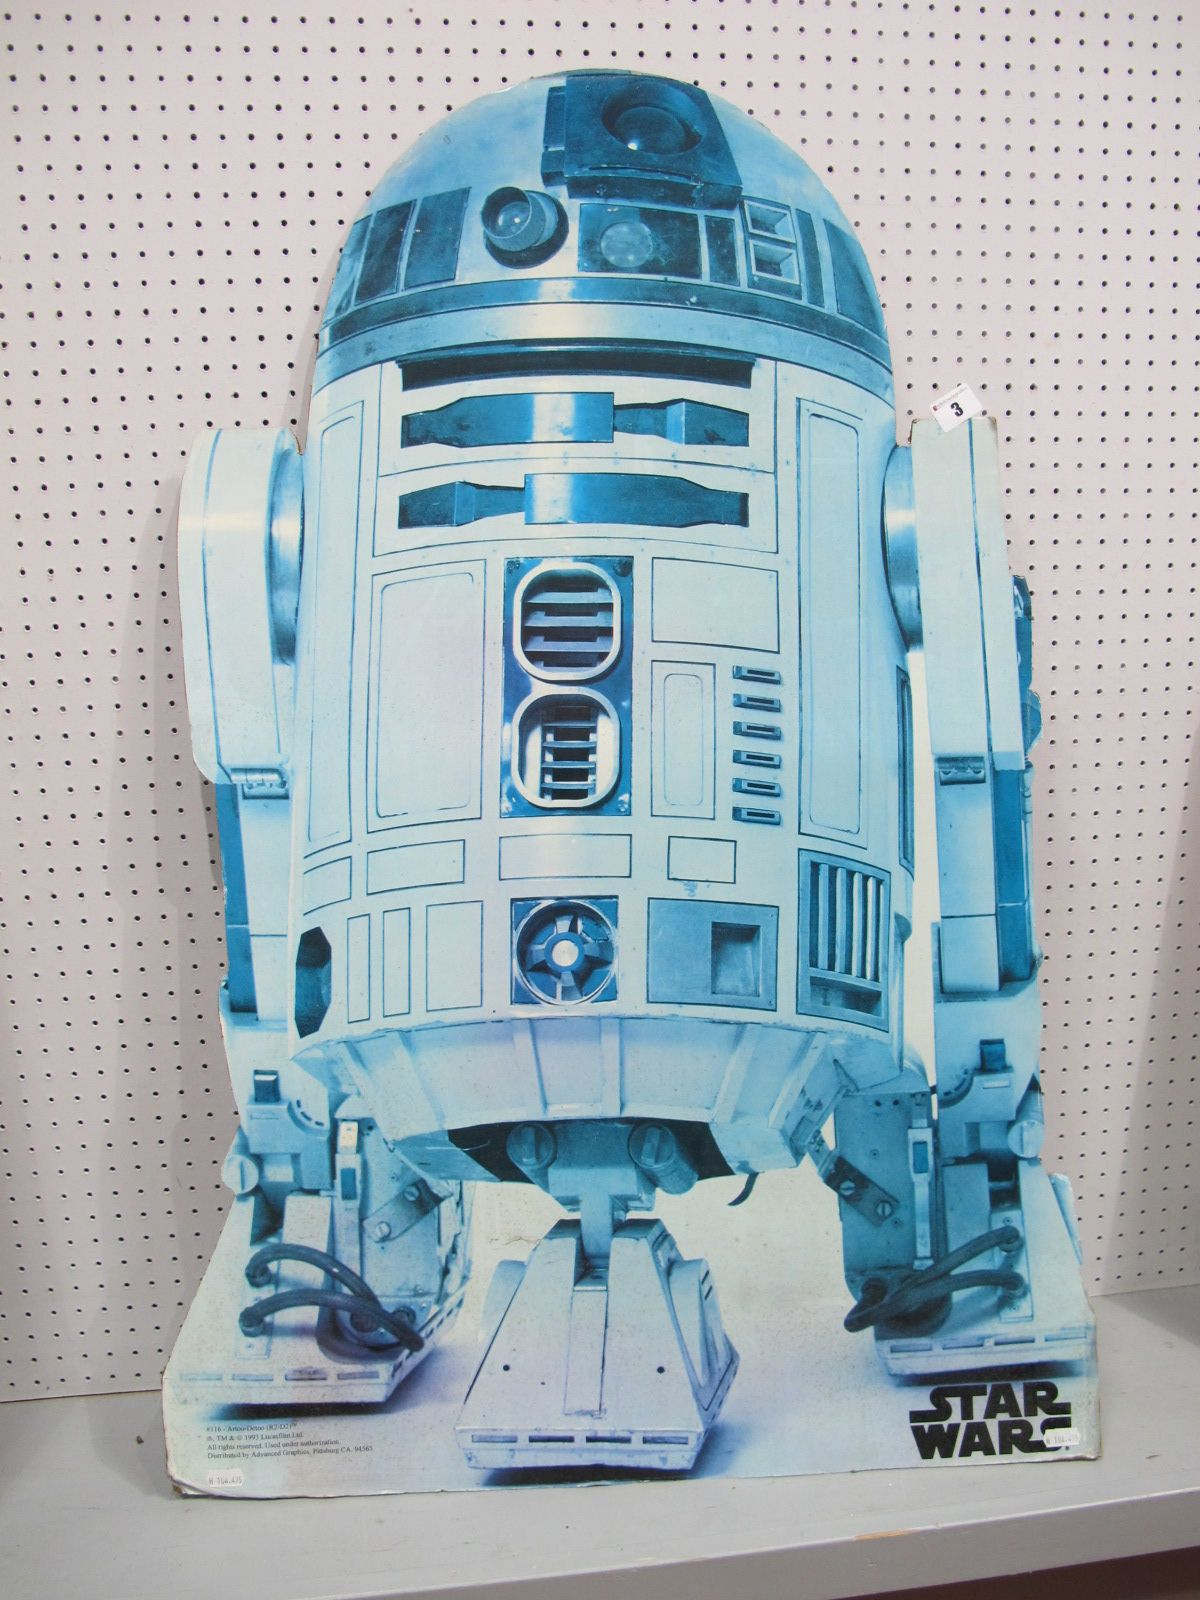 Lot 3 - An Original Star Wars R2-D2 Card Standee 1993, slightly faded but unmistakable and rare.